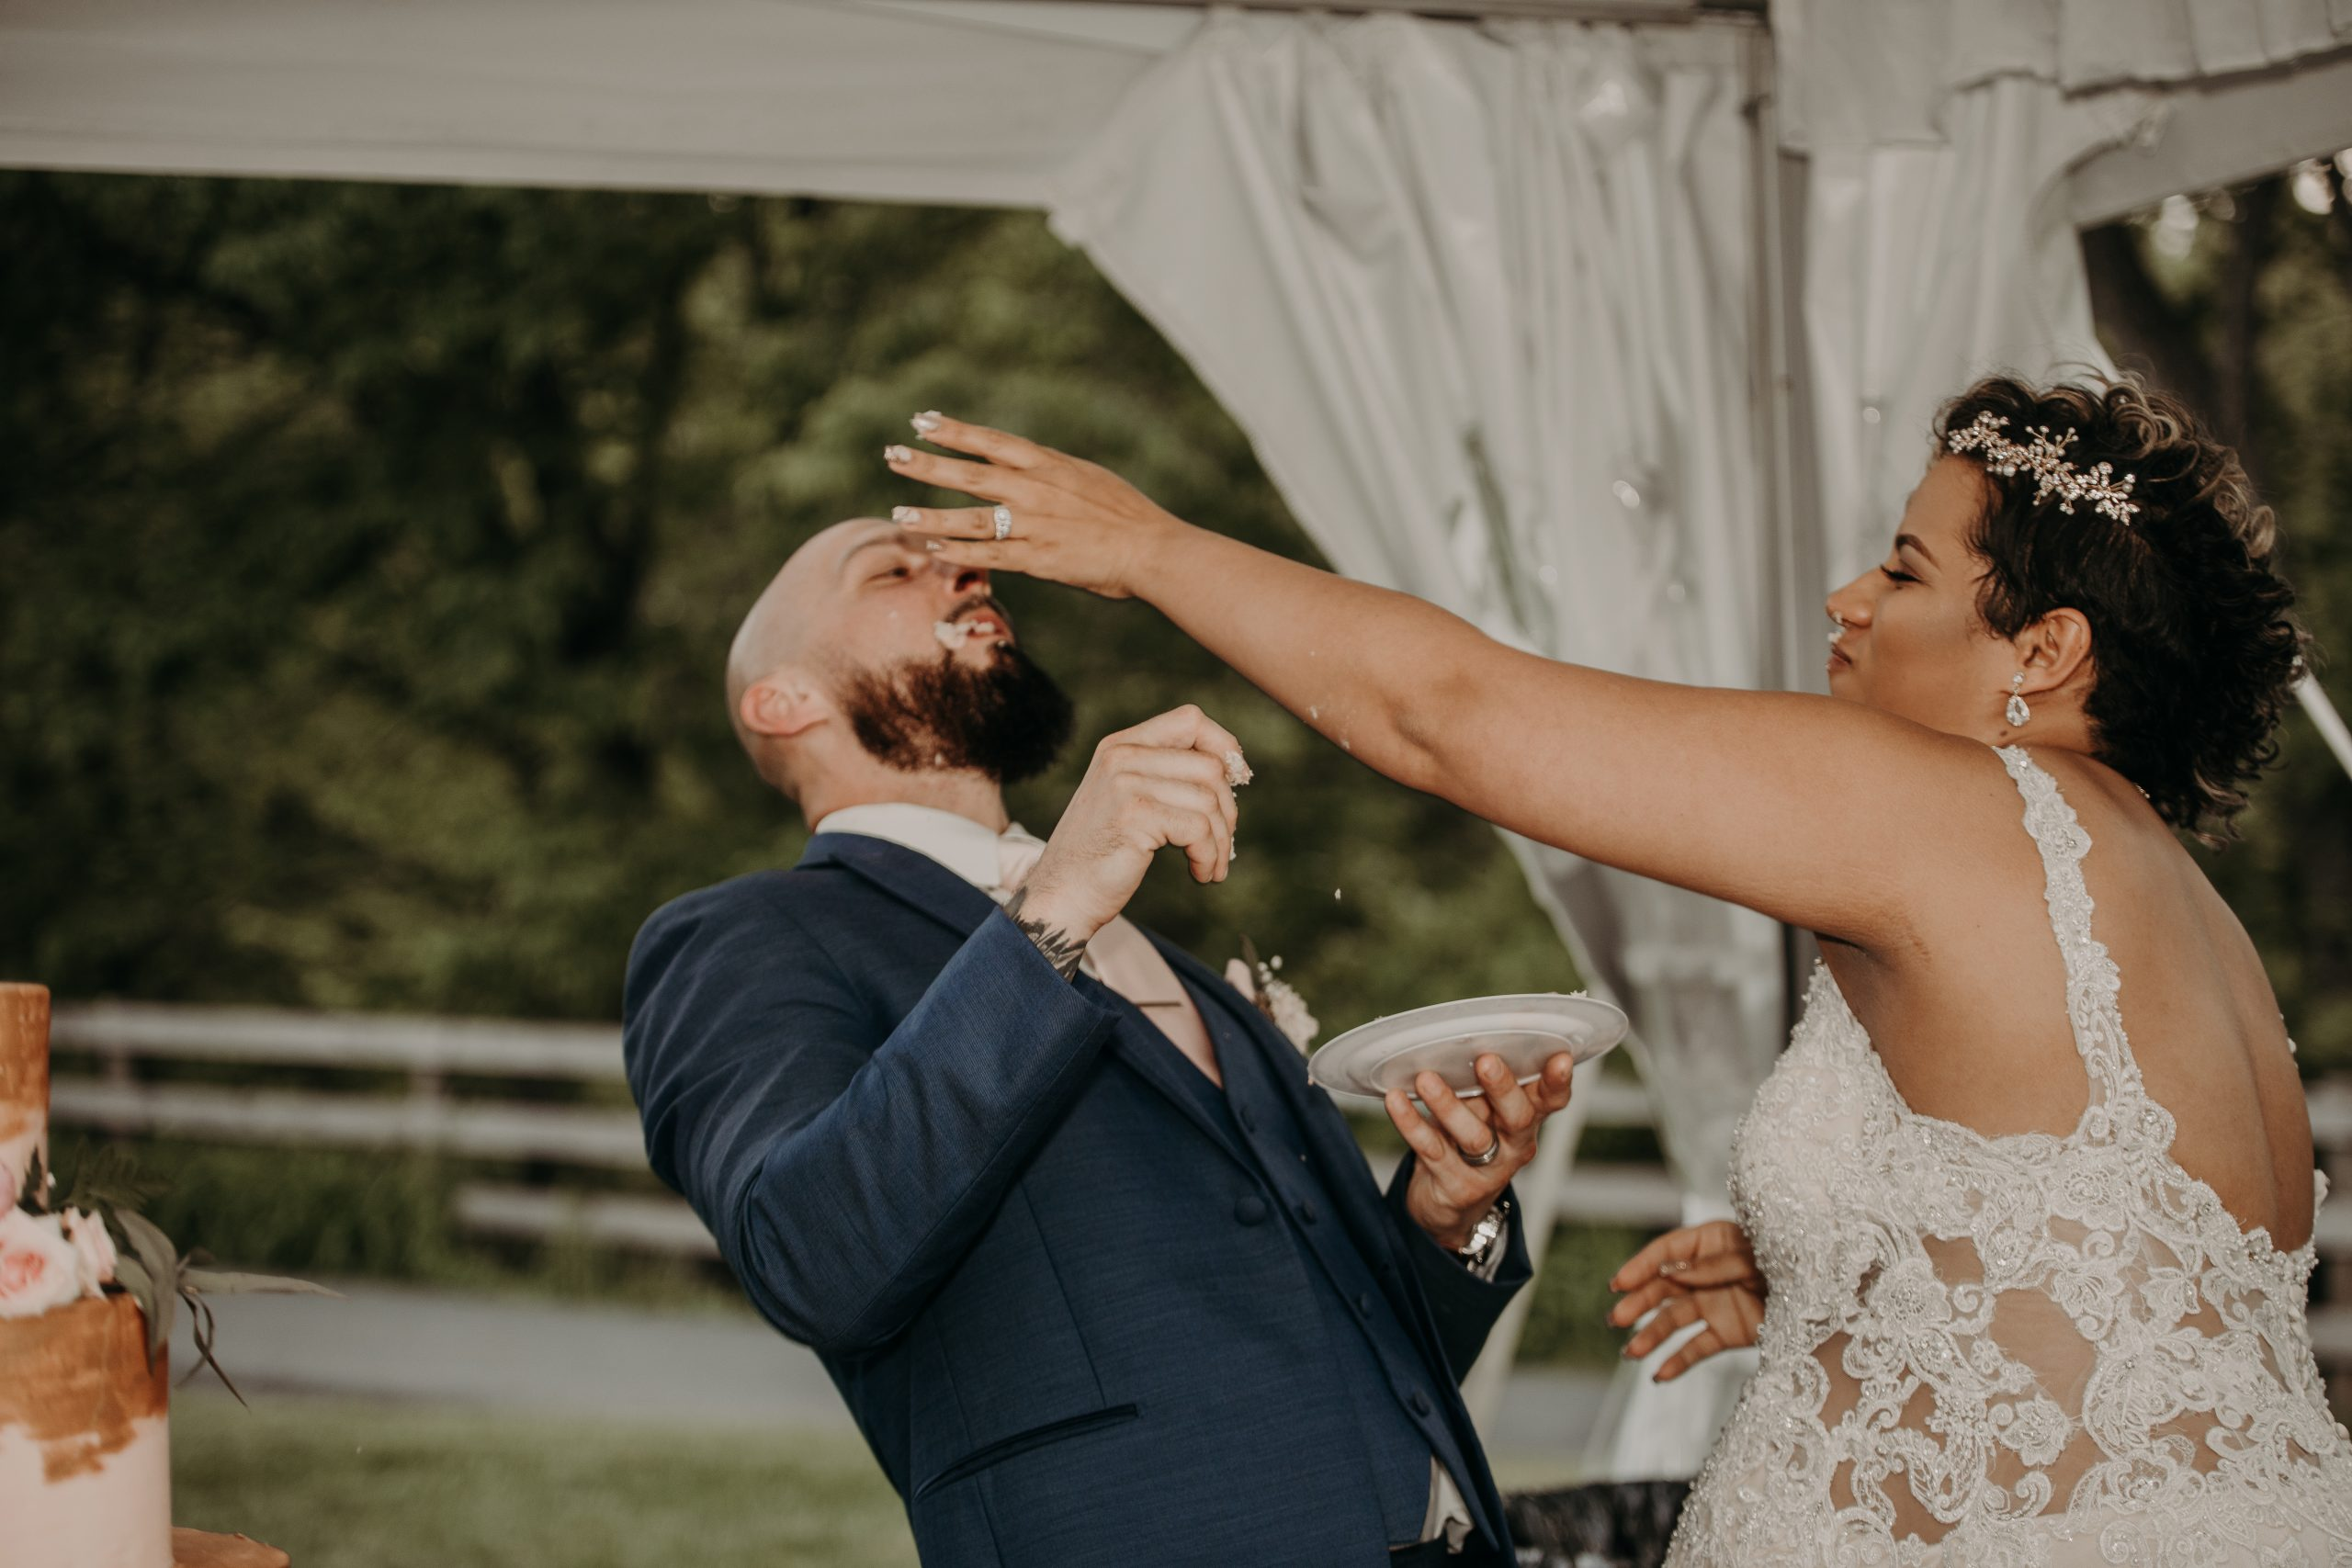 The bride got one up on the groom with some cake to the face after cutting the first slice. Christine and Richard wed on the Chestnut Hill Villa grounds on May of 2019. This organic ethereal styled wedding was captured by Garnet Dahlia Photography and featured on Dream Weddings.